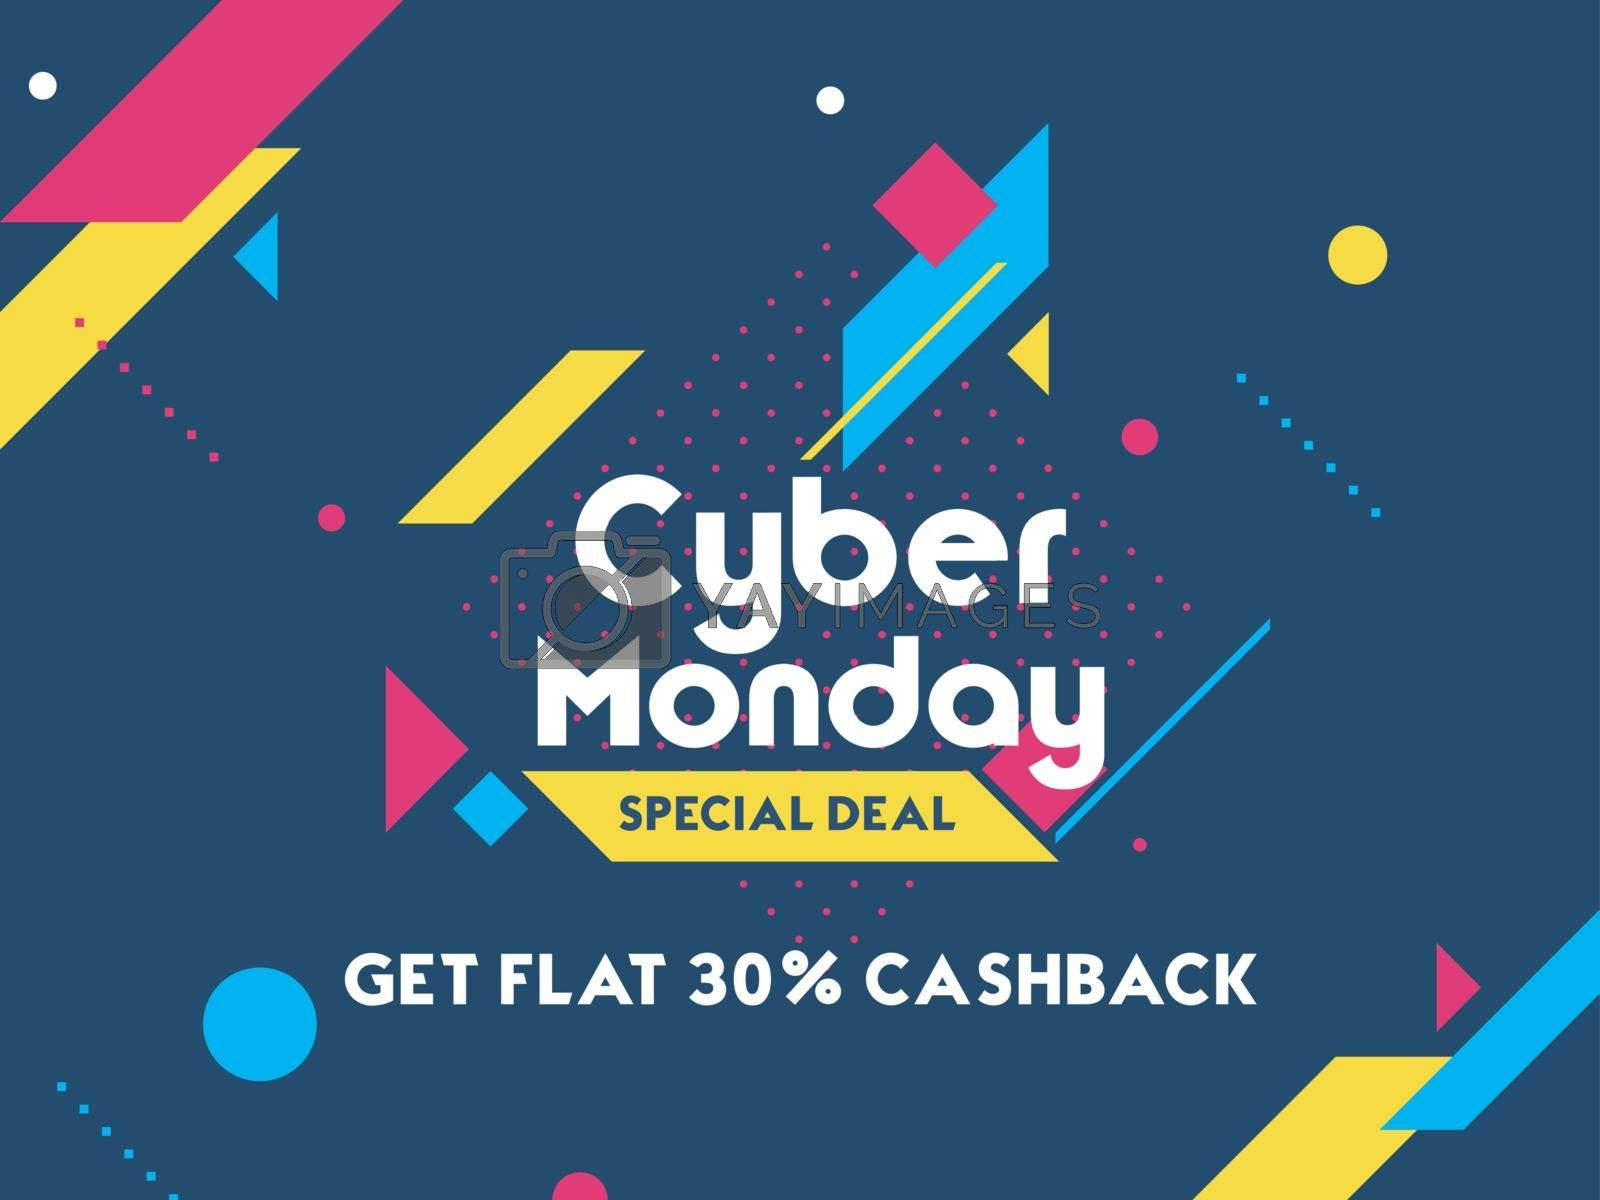 Get 30% cashback on Cyber Monday Sale. Advertising poster or banner design with abstract elements on blue background.